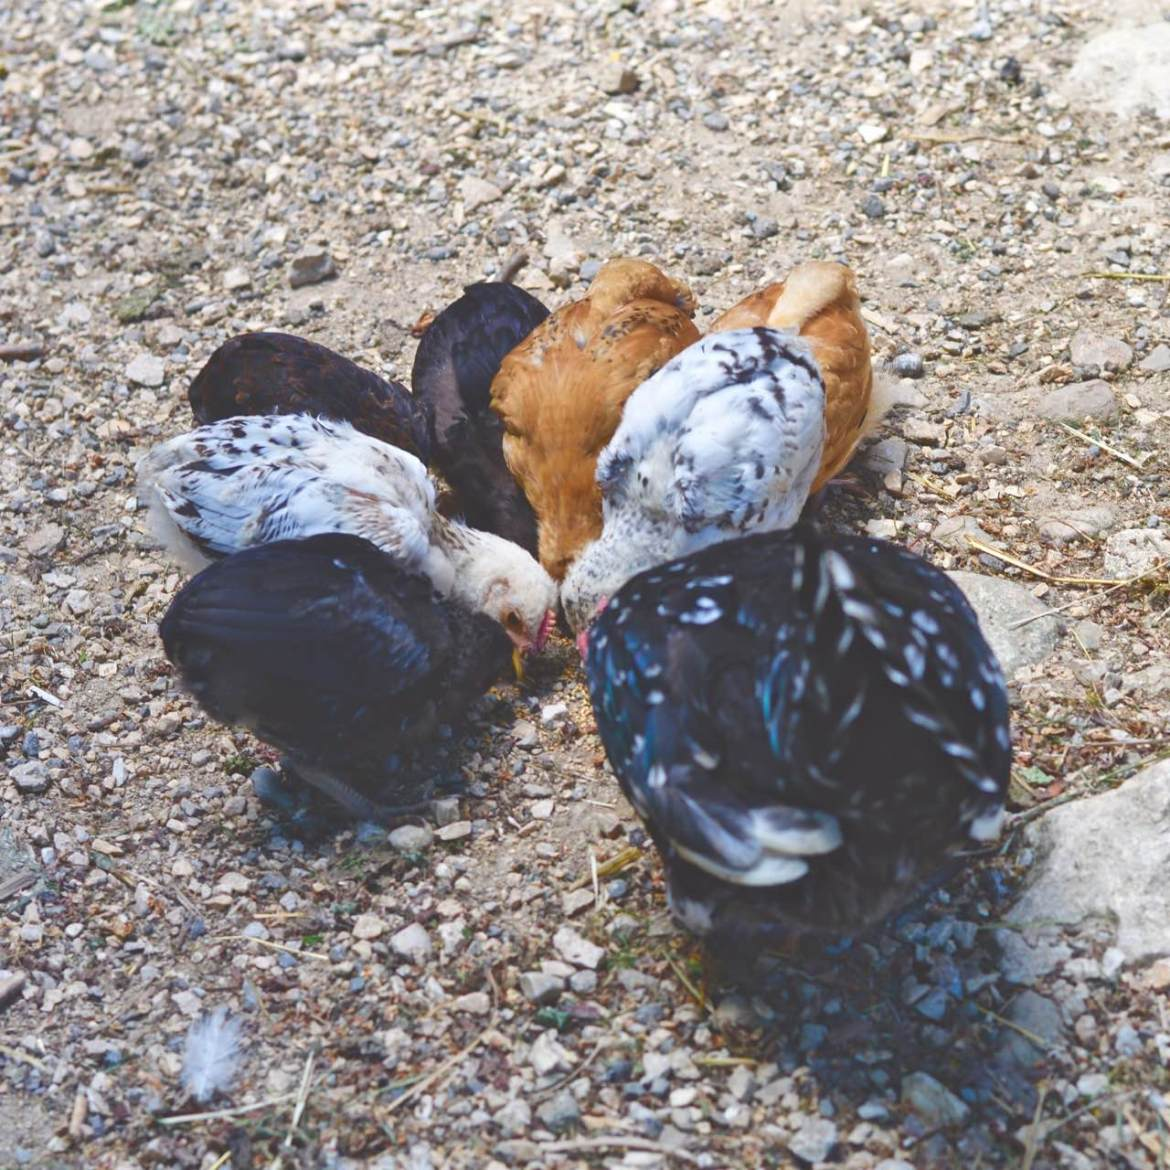 chickens ferme lespinasse plantes sauvage comestible